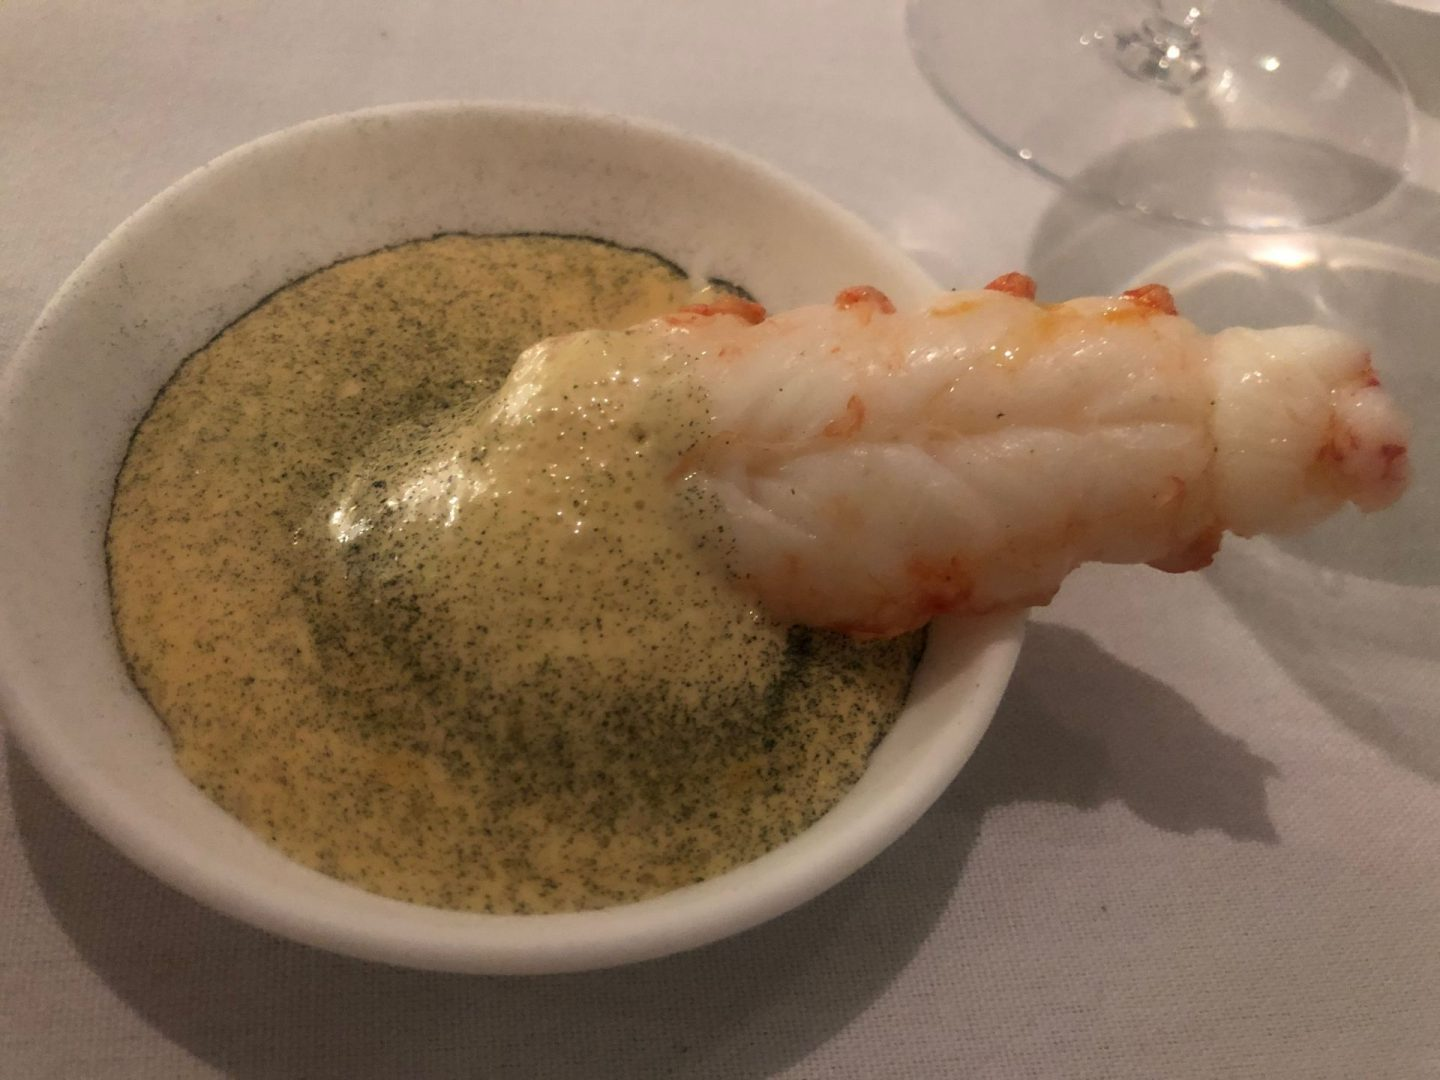 Langoustine with black Garlic mayonnaise and Spirulina powder was a standout dish.